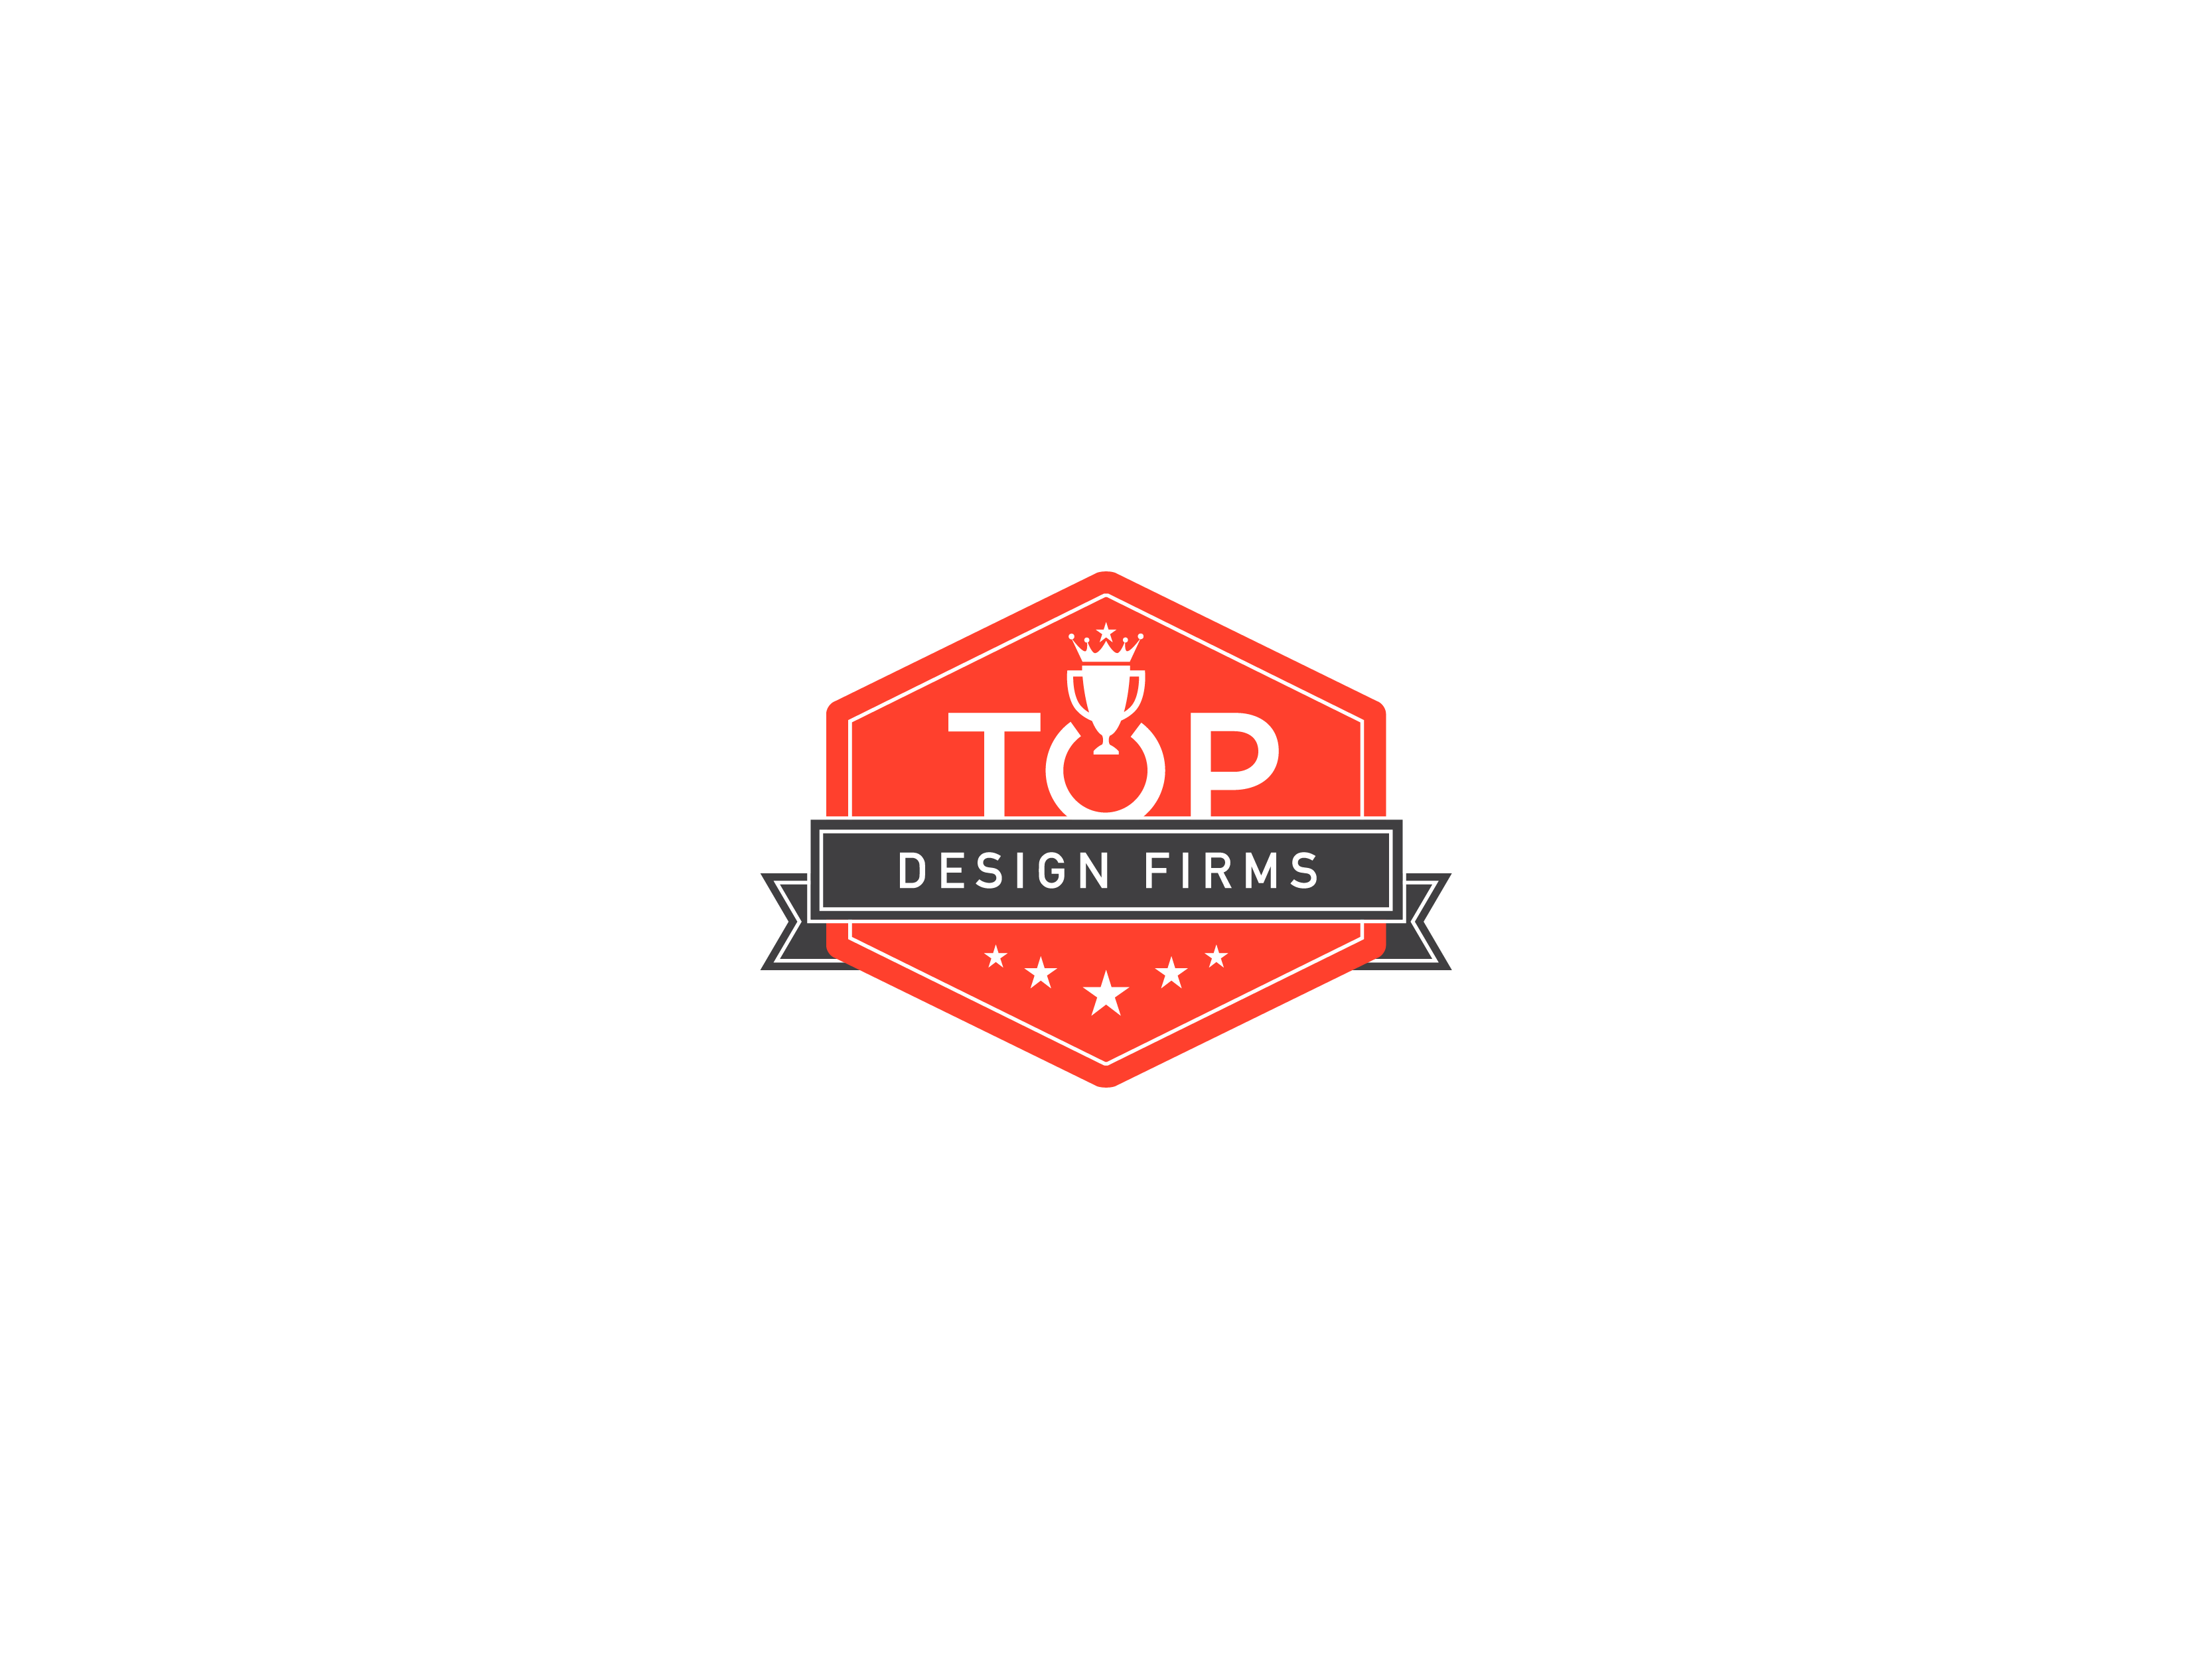 Top Design Firms Announces Top 10 Web Design Firms in the Nation - Press Release